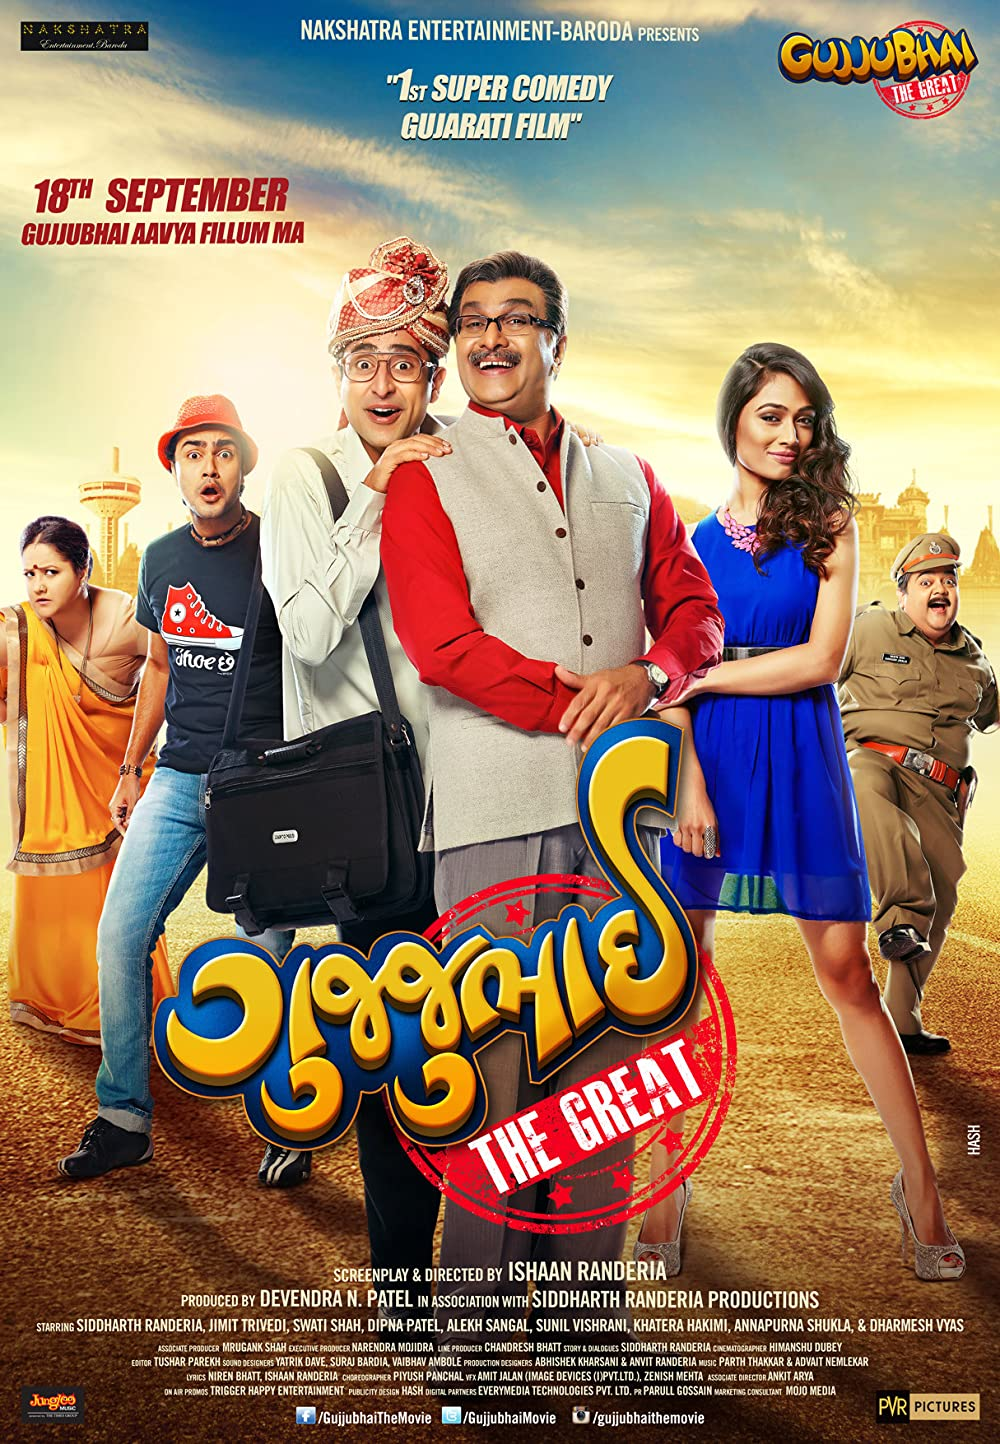 Gujjubhai the Great 2015 Gujarati Full Movie 720p HDRip 930MB ESub Download